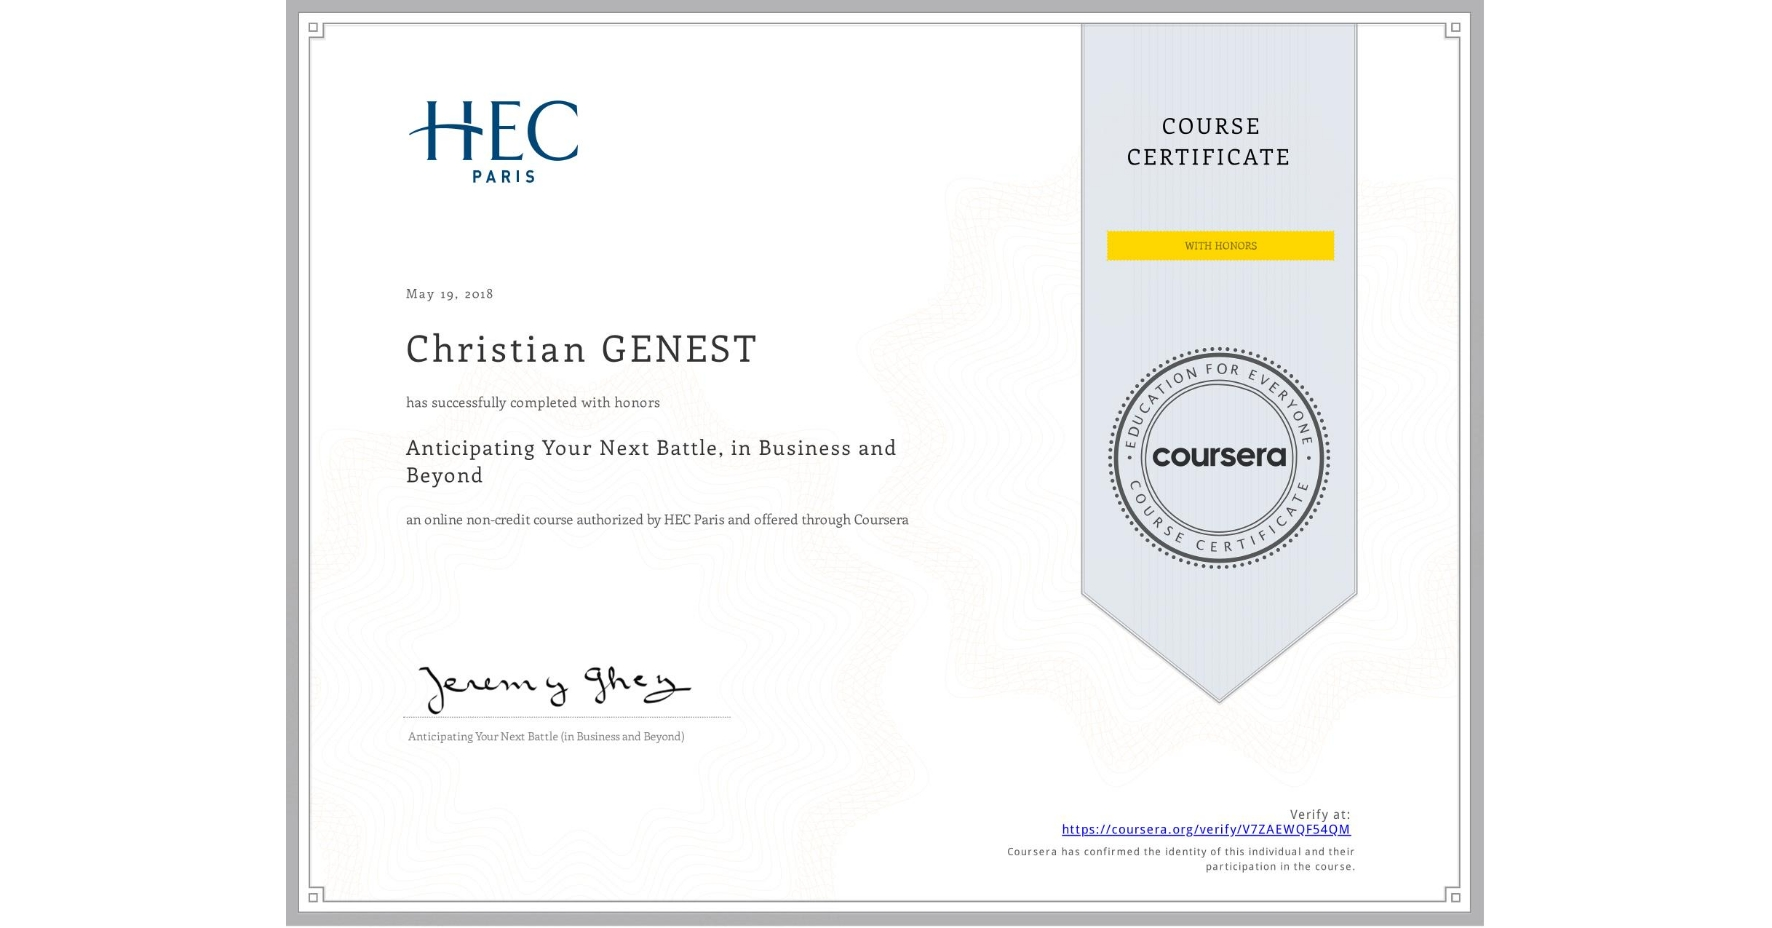 View certificate for Christian GENEST, Anticipating Your Next Battle, in Business and Beyond, an online non-credit course authorized by HEC Paris and offered through Coursera